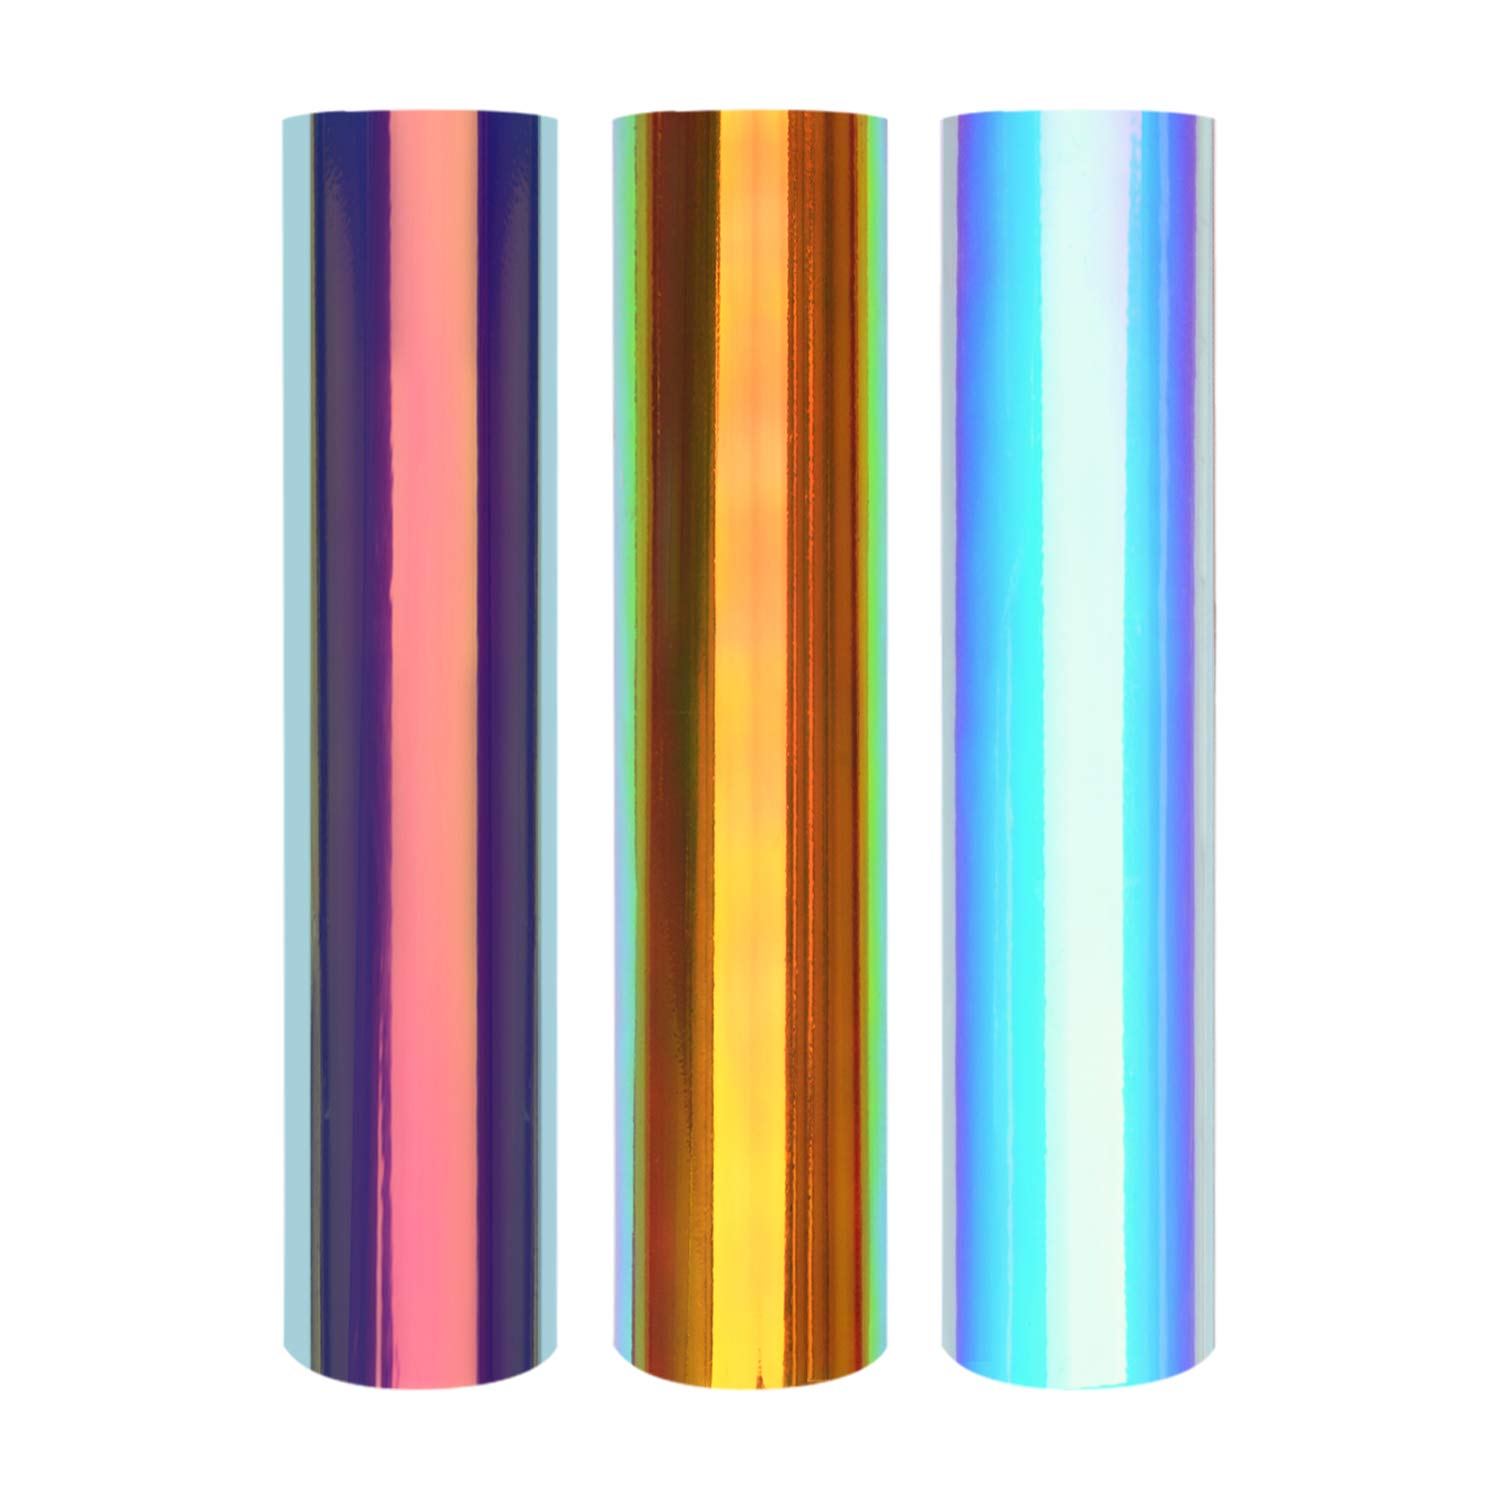 """Holographic Heat Transfer Vinyl HTV 3 Pack 12""""x10"""" Iron On Vinyl for Cameo, 3 Assorted Colors HTV Holographic Bundle"""